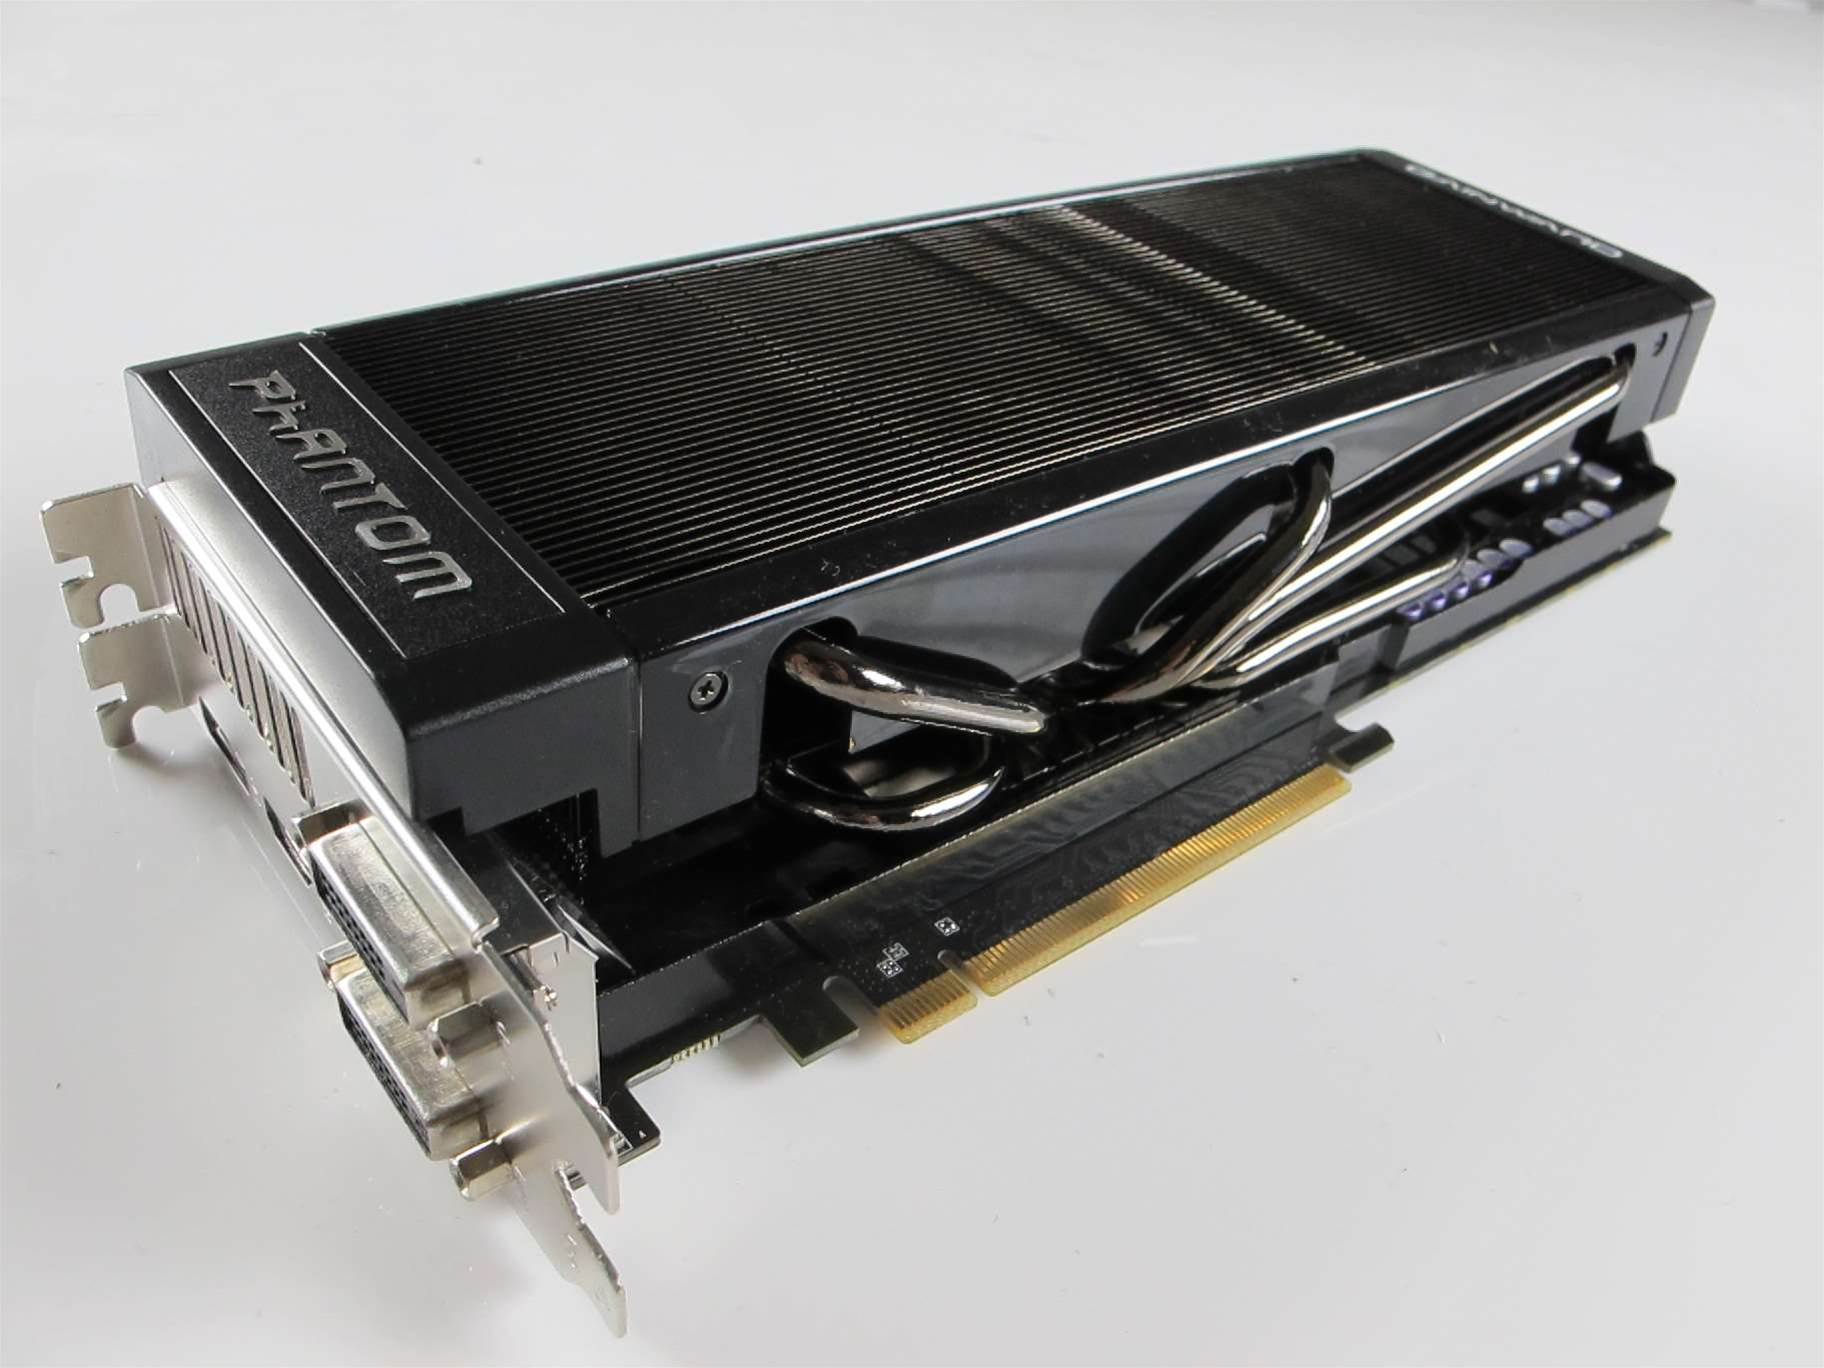 Gainward GTX 660Ti review - conveniently fast